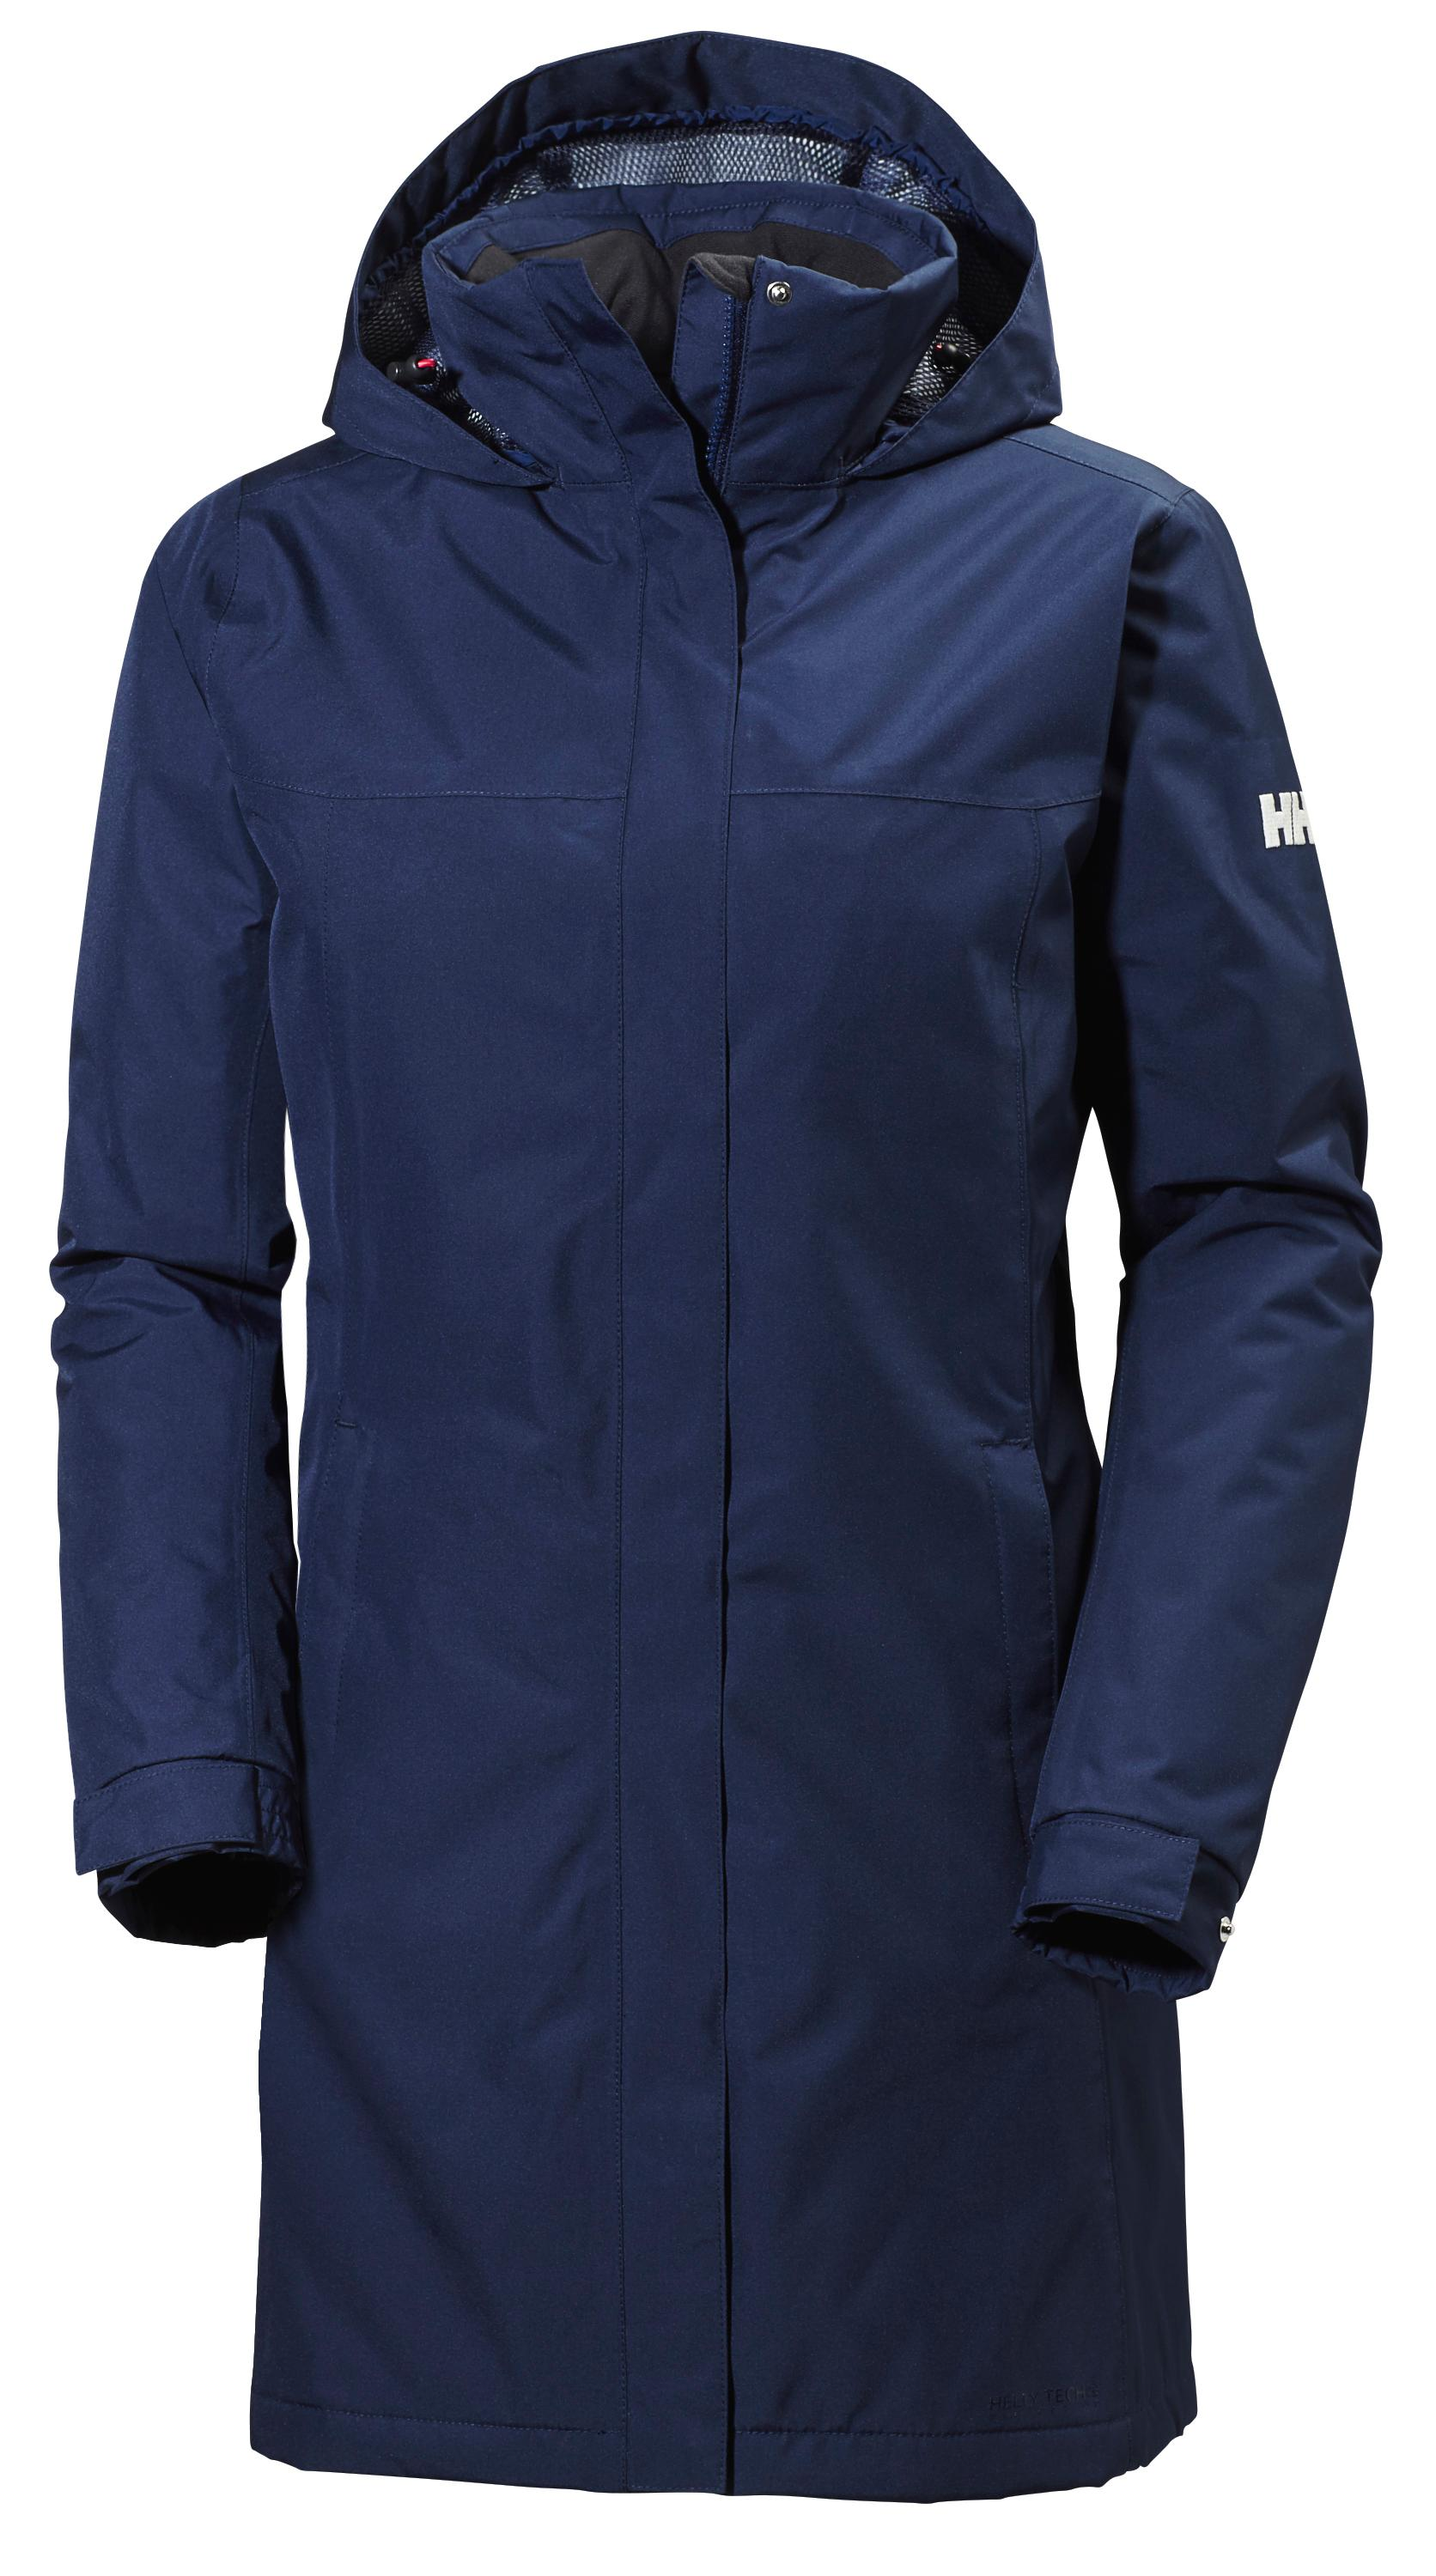 Amazon.com: Helly Hansen Women's Aden Jacket: Sports & Outdoors